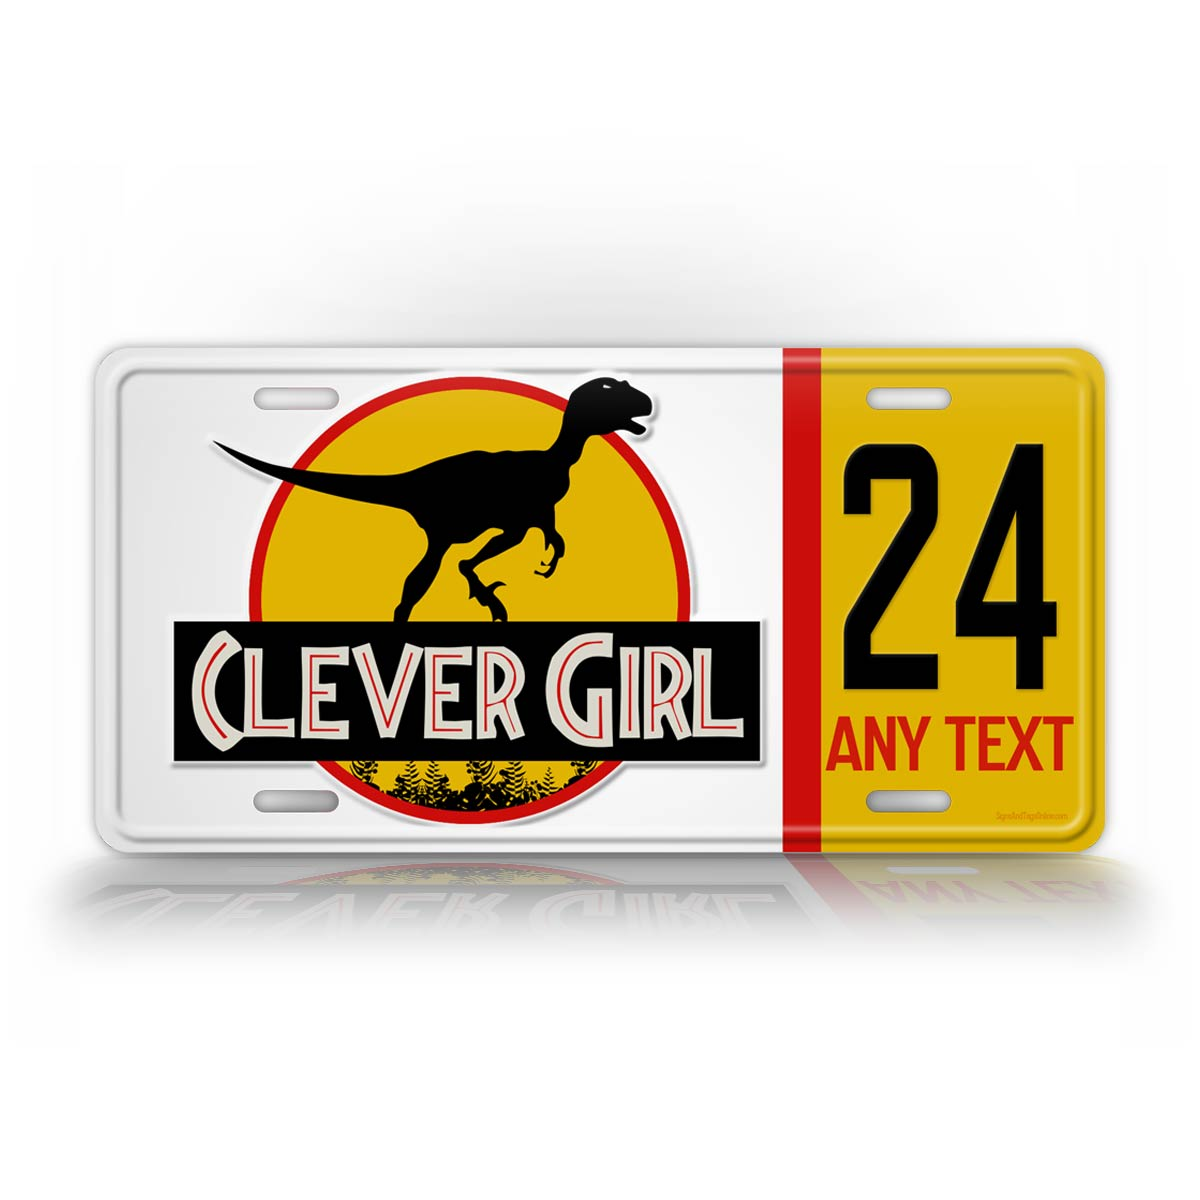 Jurassic Park Style Clever Girl Jeep License Plate